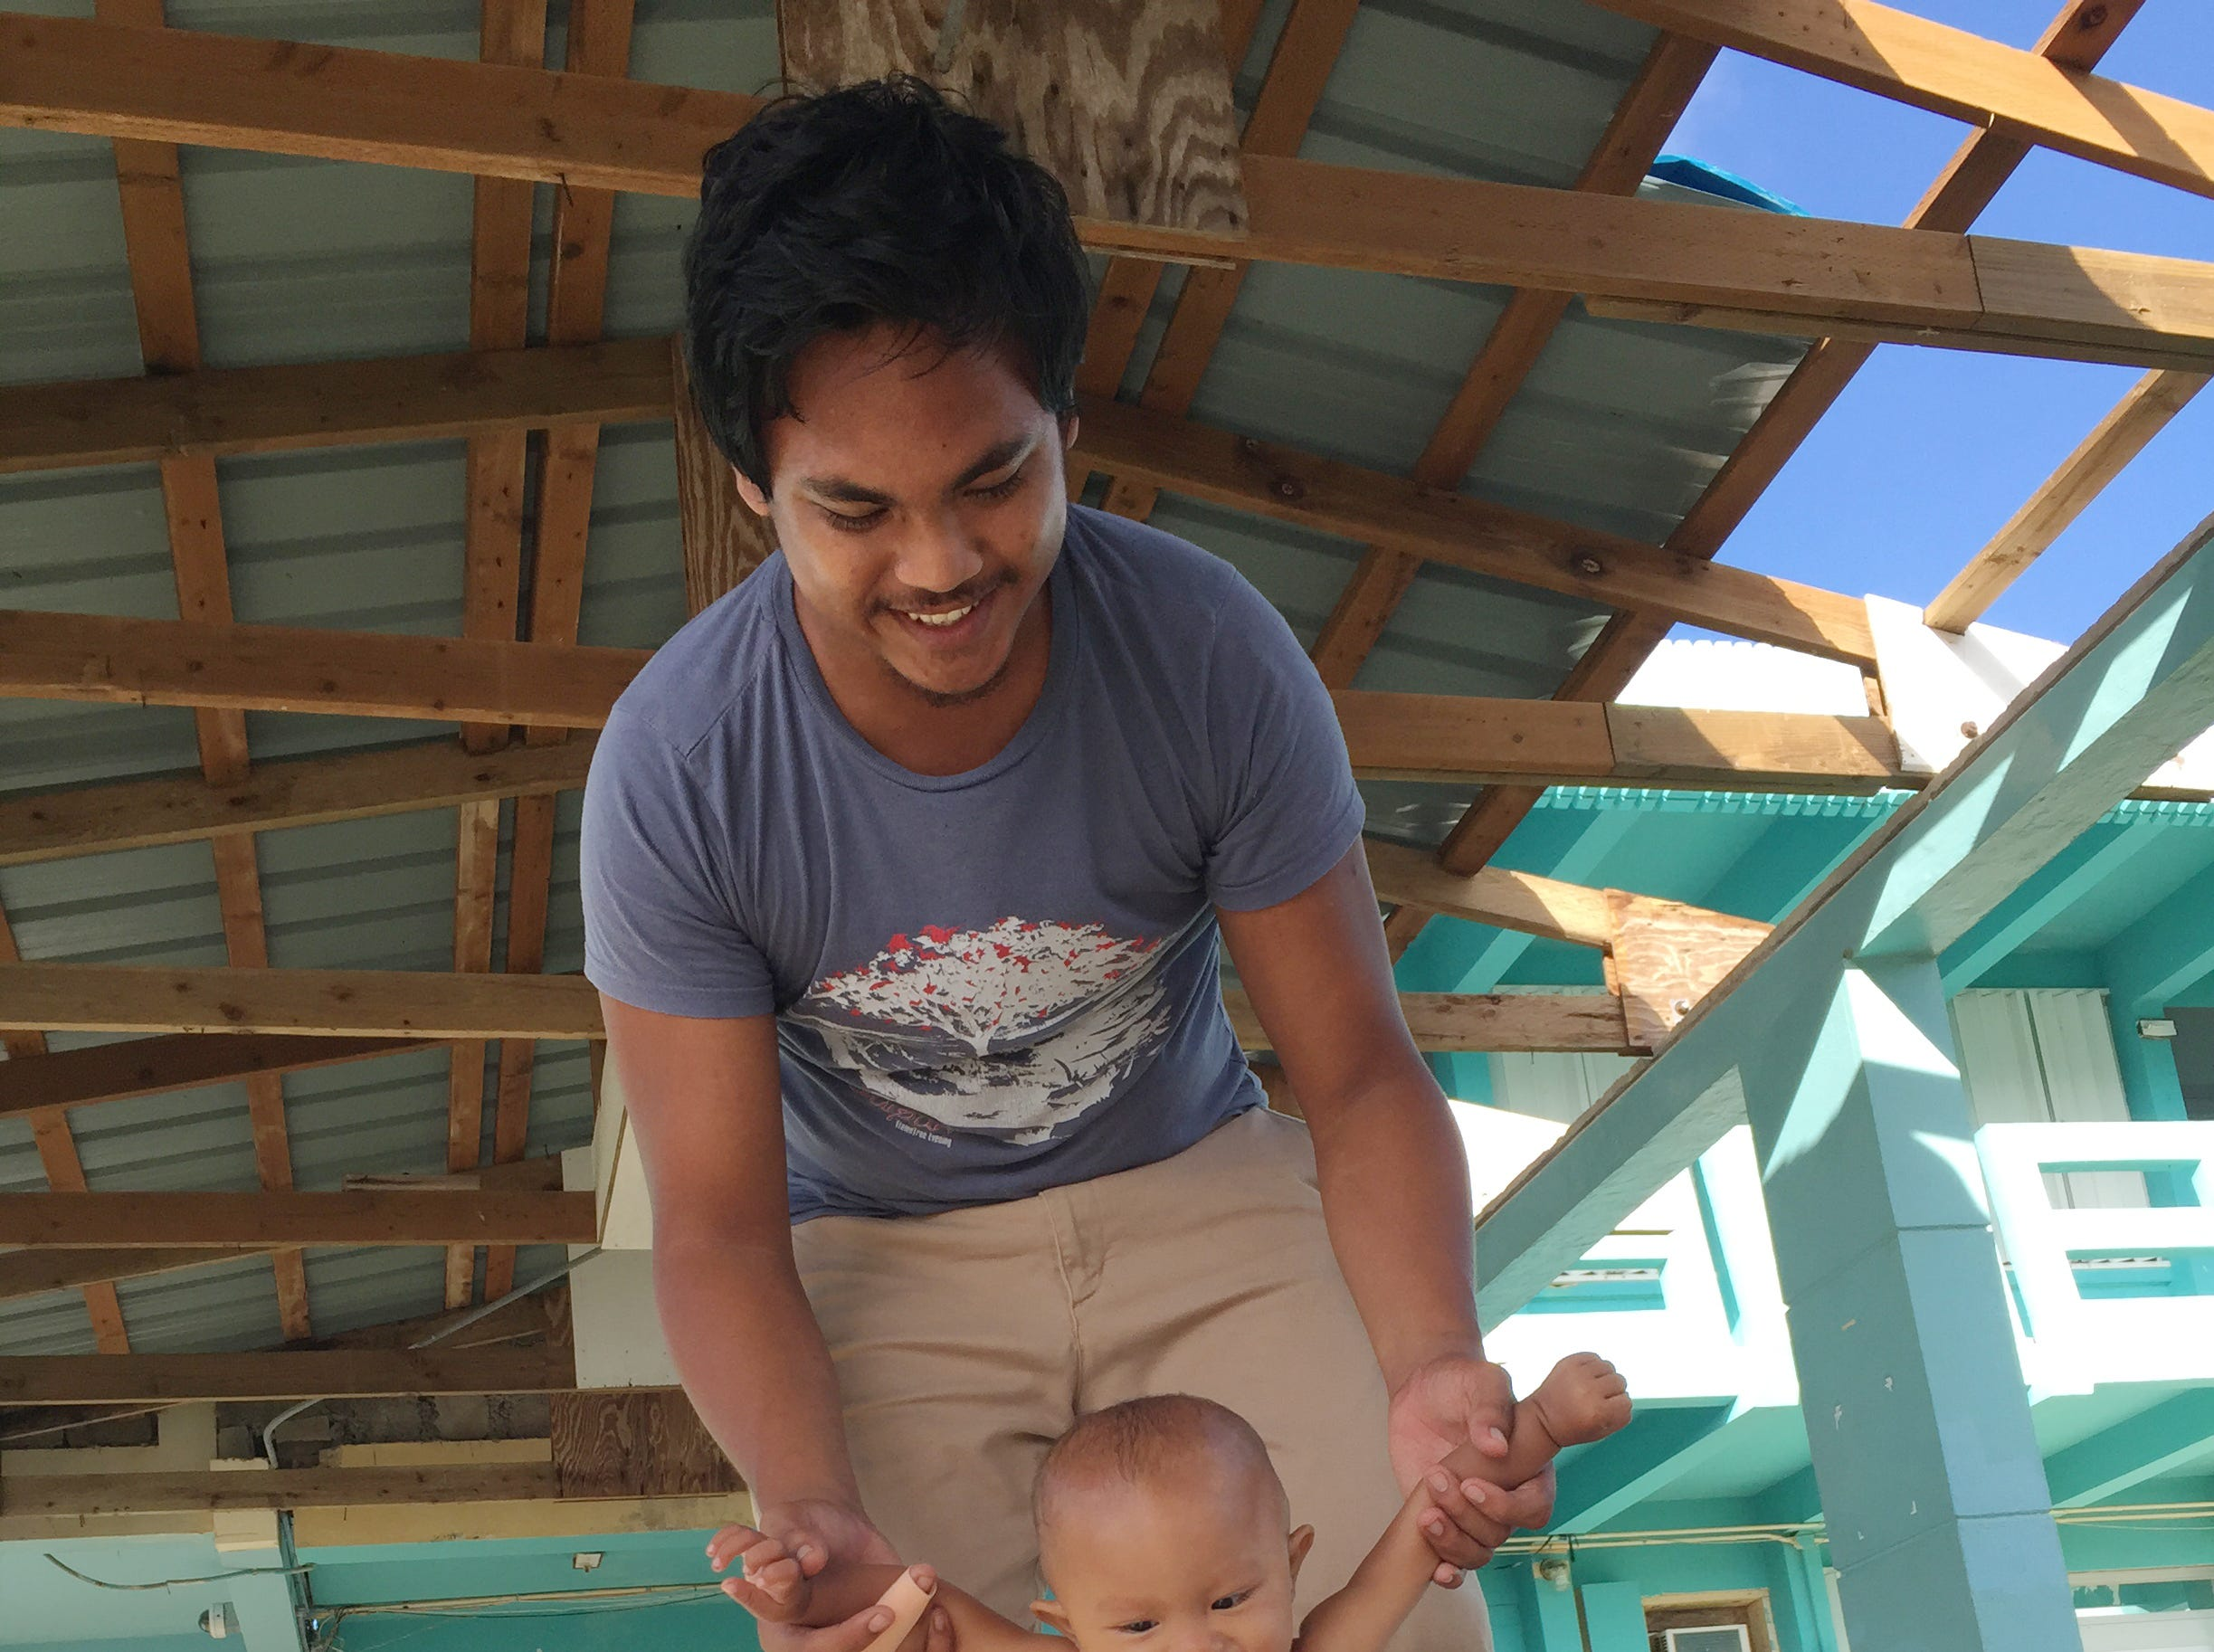 Larry Ada, 20, helps his 9-month-old daughter Emylinn walk at Marianas High School on Saipan, where they remained sheltered on Nov. 1, 2018, a week after Super Typhoon Yutu. Emylinn was a premature baby and small for her age, and she's still learning to crawl, her father said.